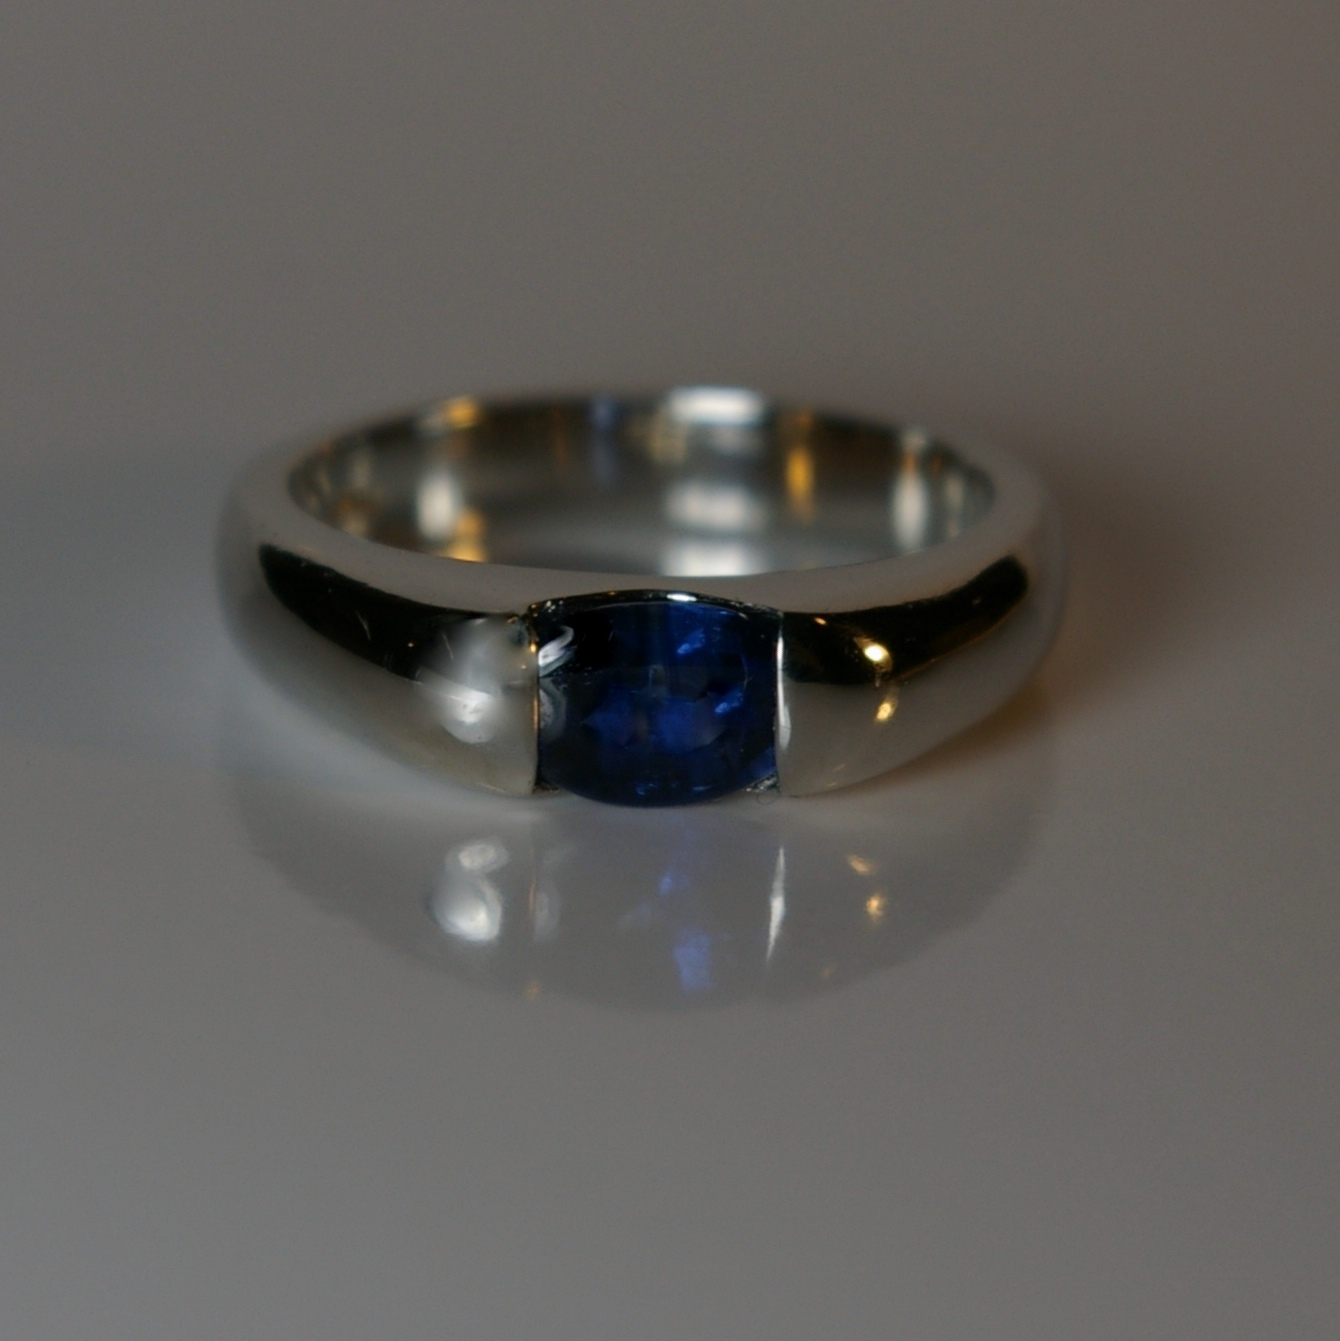 Platinum band with Sapphire 1.22 carats